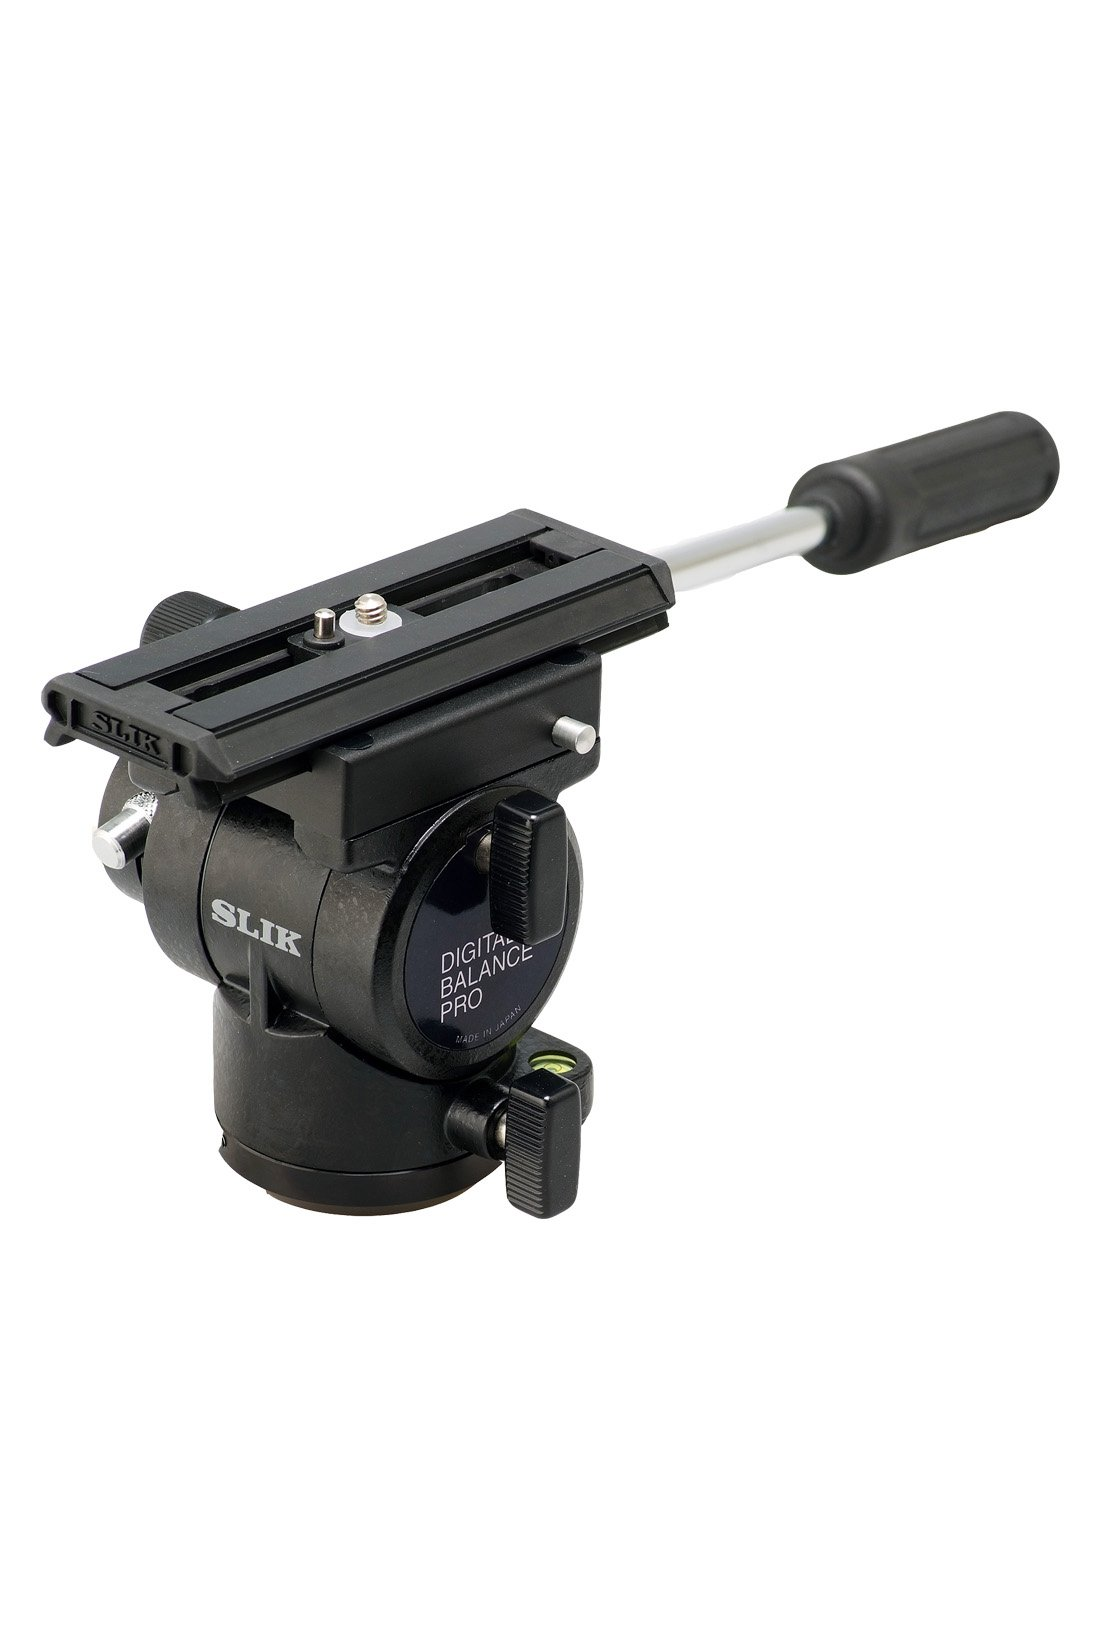 Daiwa / SLIK Digital Balance Pro Fluid Pan Head with Quick Release, Black (618-665)